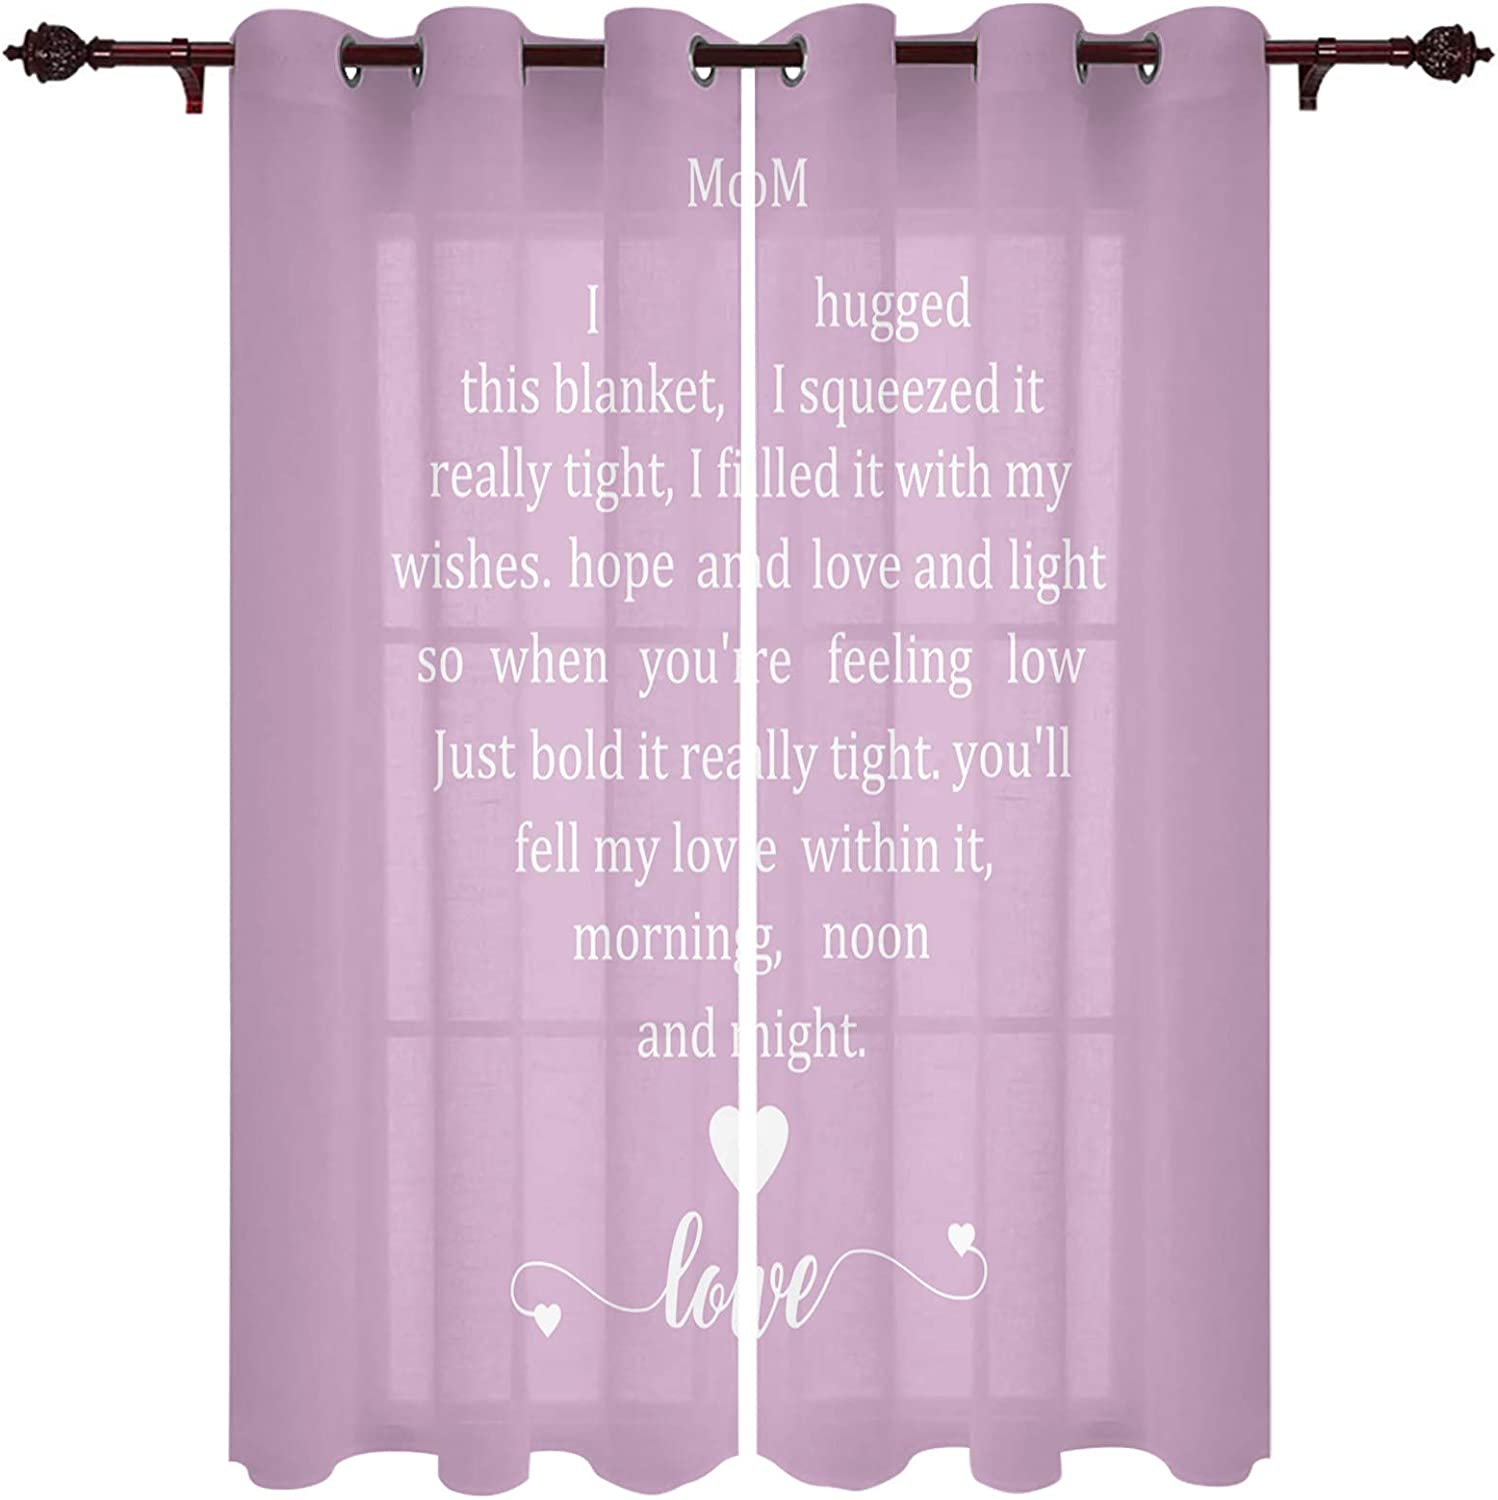 Blackout Curtains for Bedroom, Mothers Day Pink ove Expression for Mom Thermal Insulated Room Darkening Curtains, Window Curtain for Living Room, 63 Inches Length(Set of 2 Panel)